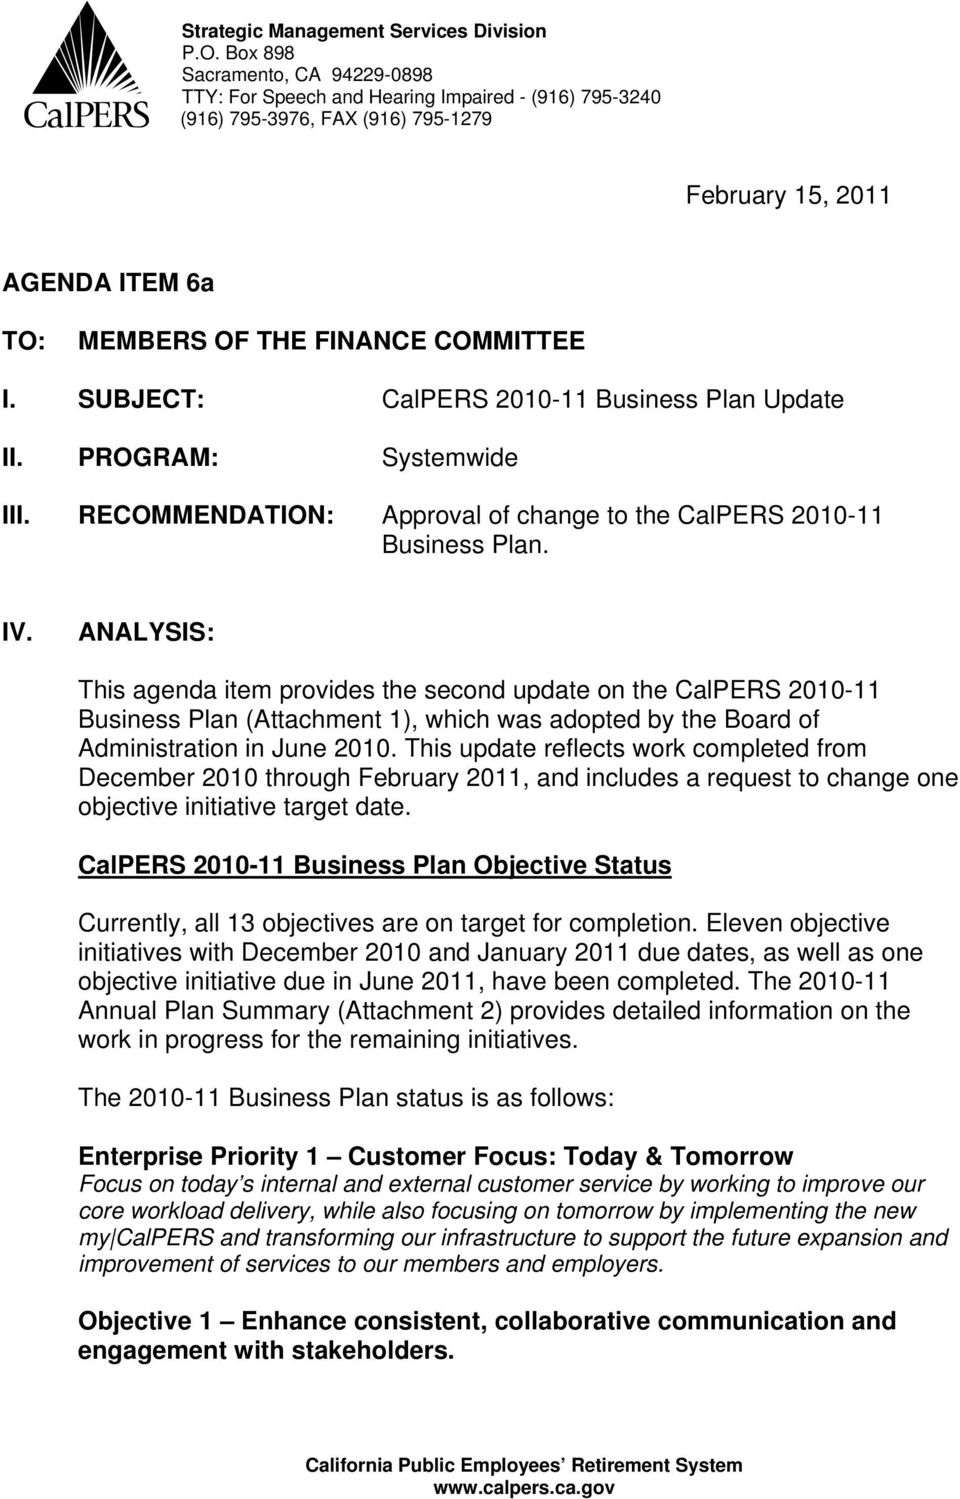 SUBJECT: CalPERS 2010-11 Business Plan Update II. PROGRAM: Systemwide III. RECOMMENDATION: Approval of change to the CalPERS 2010-11 Business Plan. IV.